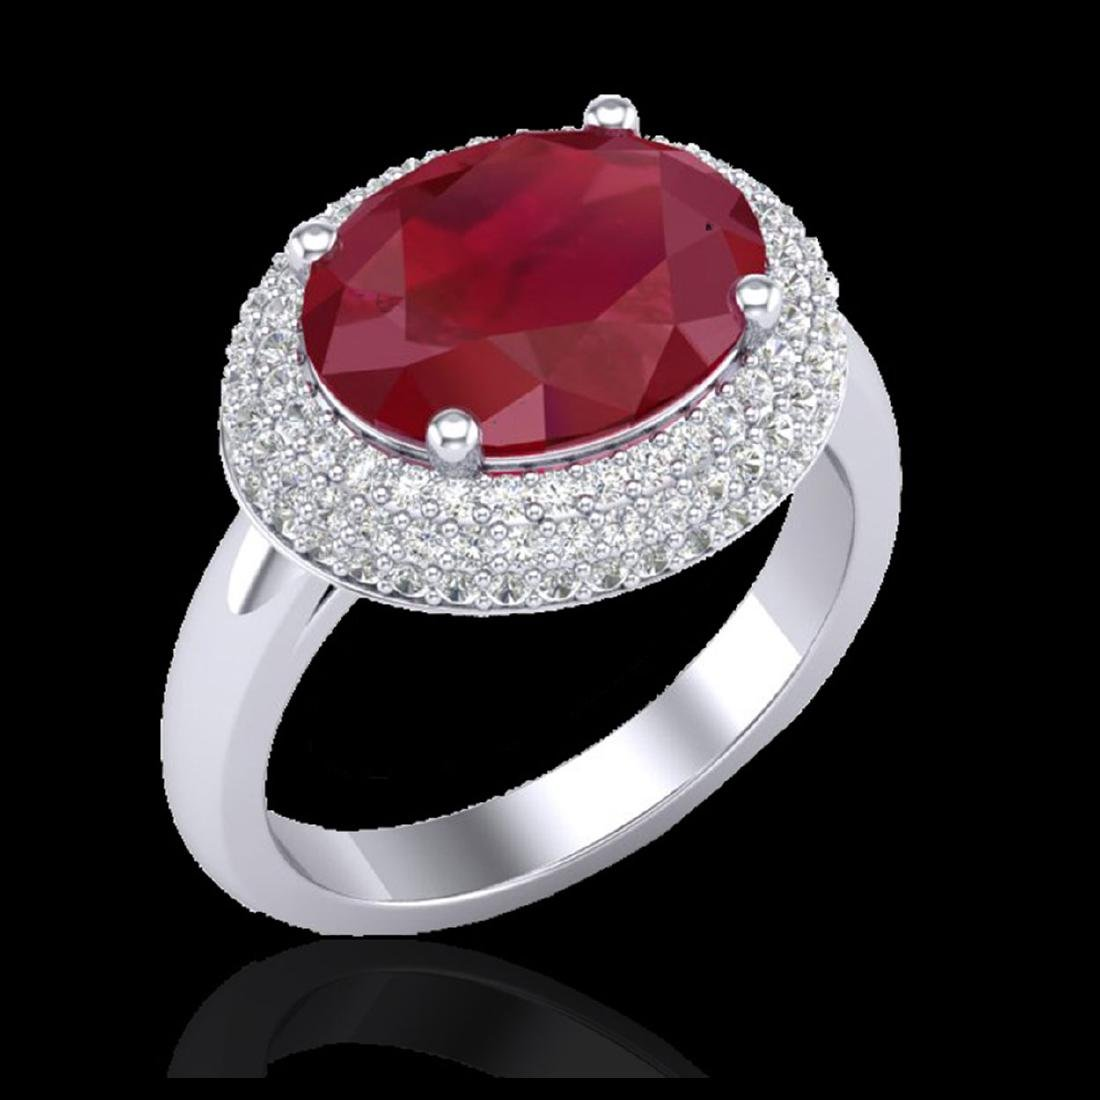 4.50 CTW Ruby & Micro Pave VS/SI Diamond Ring 18K White